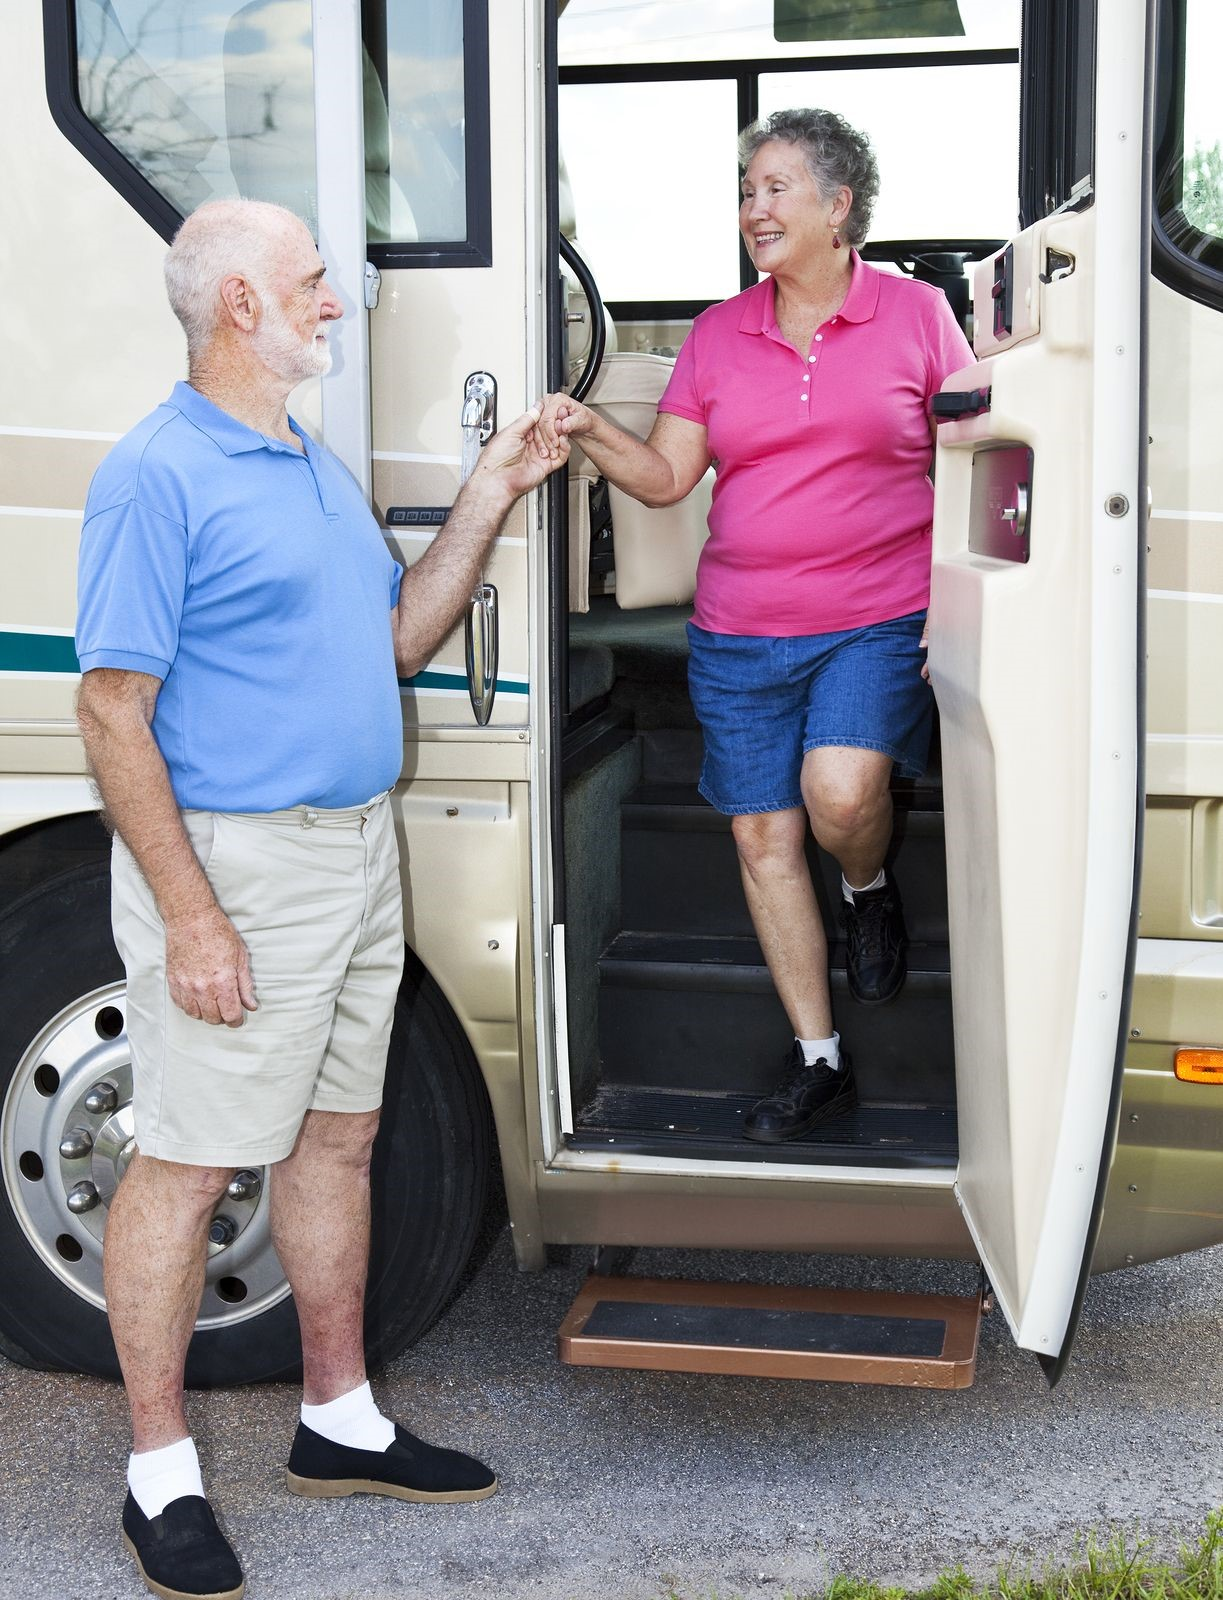 More than Transportation Software: Steps on Improving Seniors' Lives